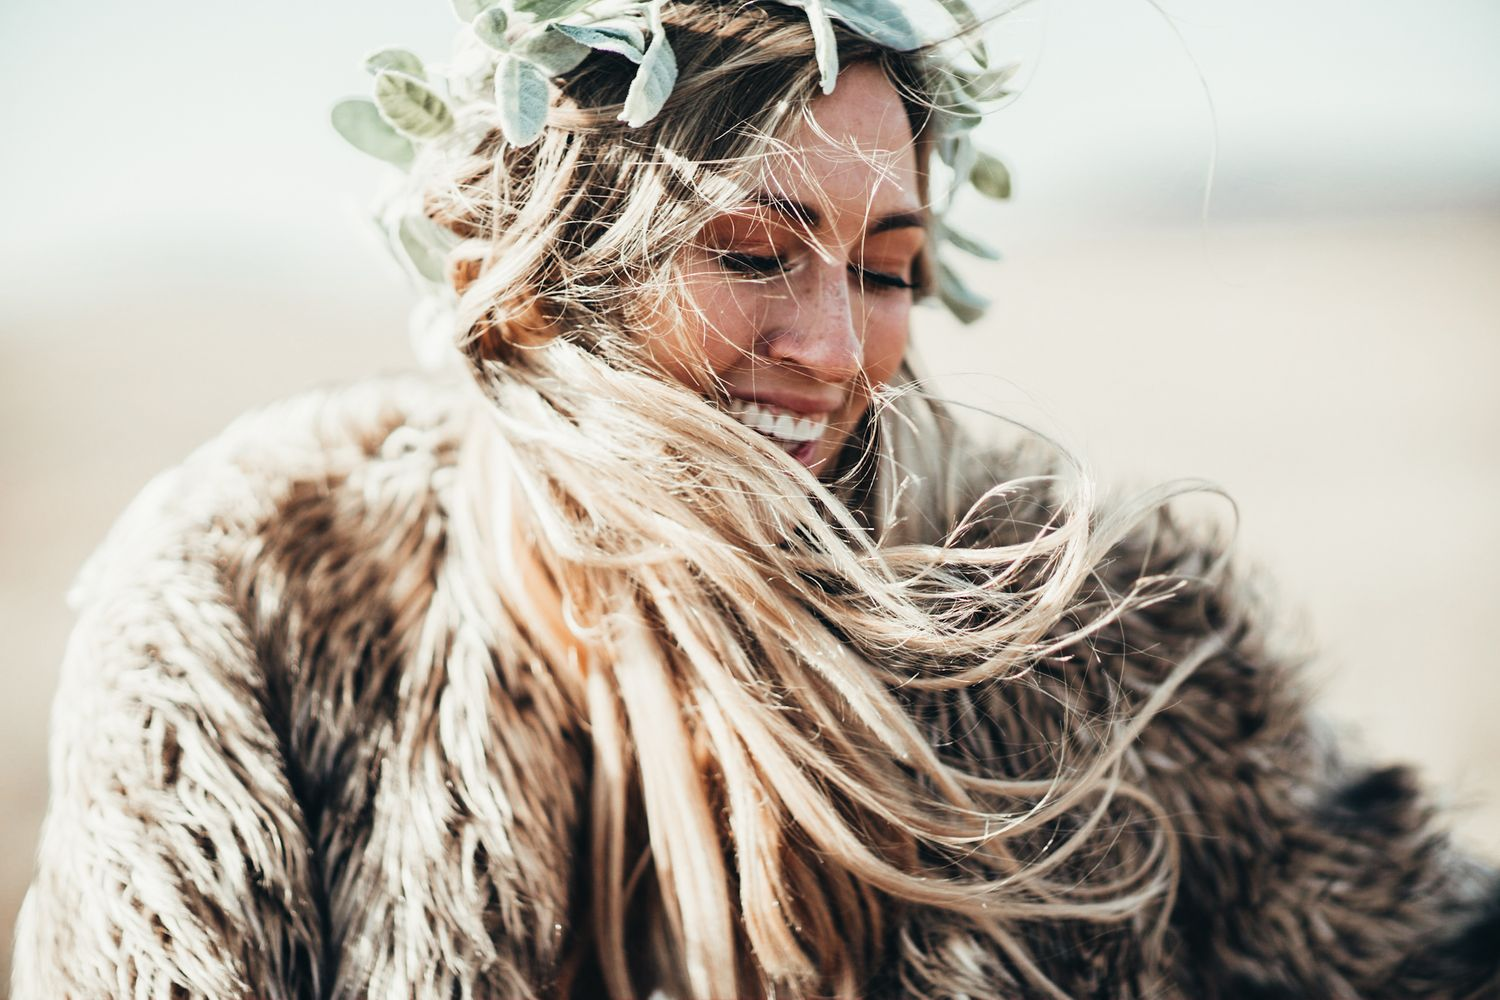 Photo Of A Young Happy Bride In The Wichita Mountains With Wind Blown Hair